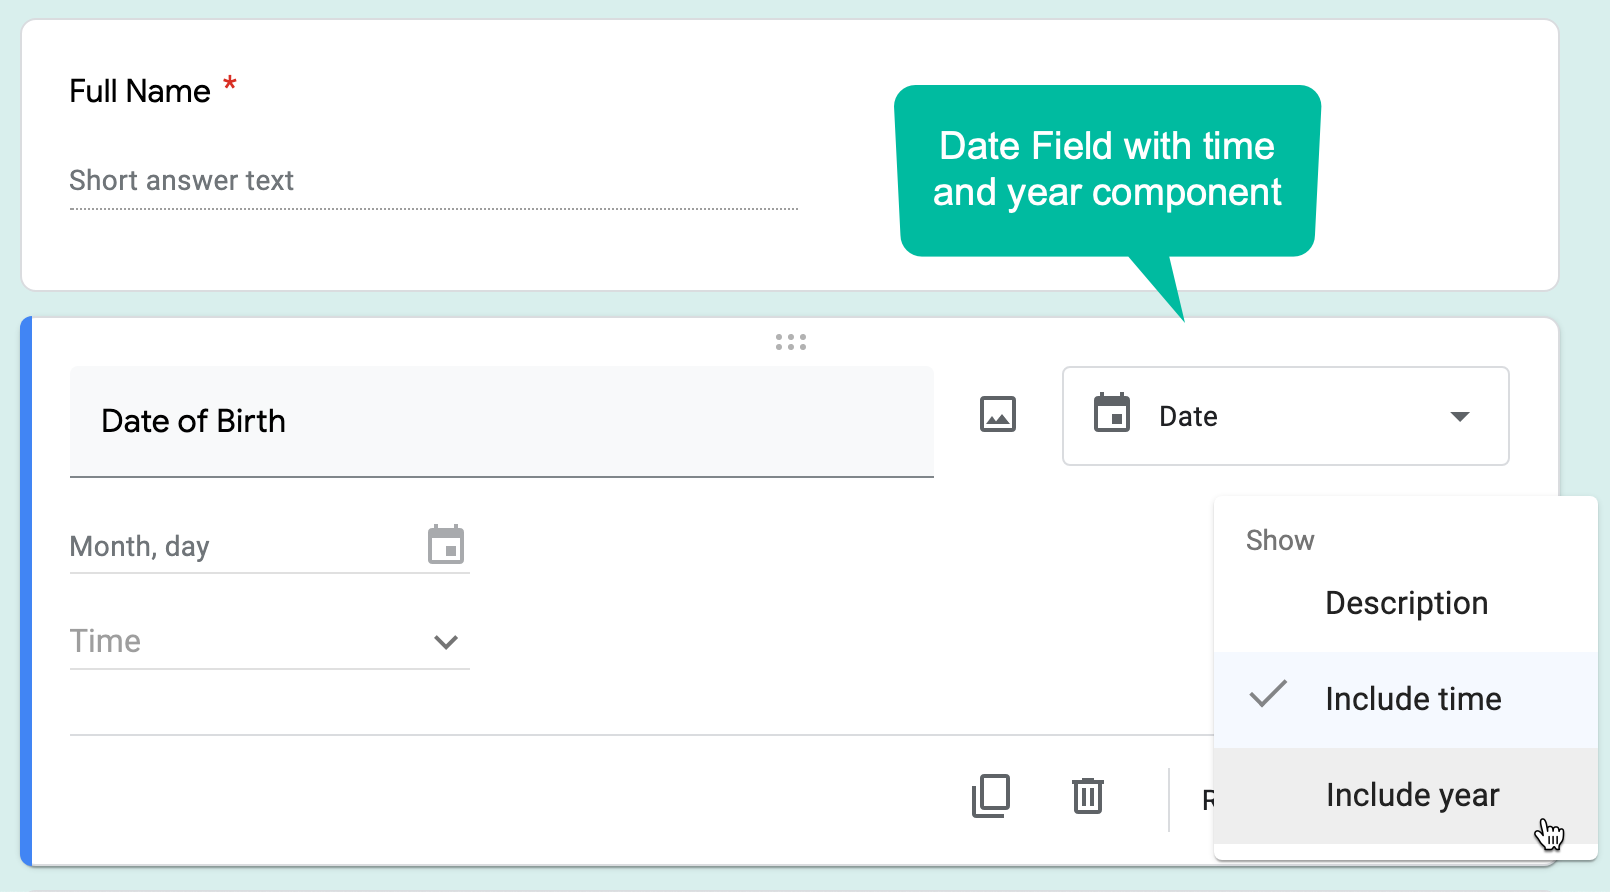 How To Change The Date And Time Format In Google Form Emails Digital Inspiration